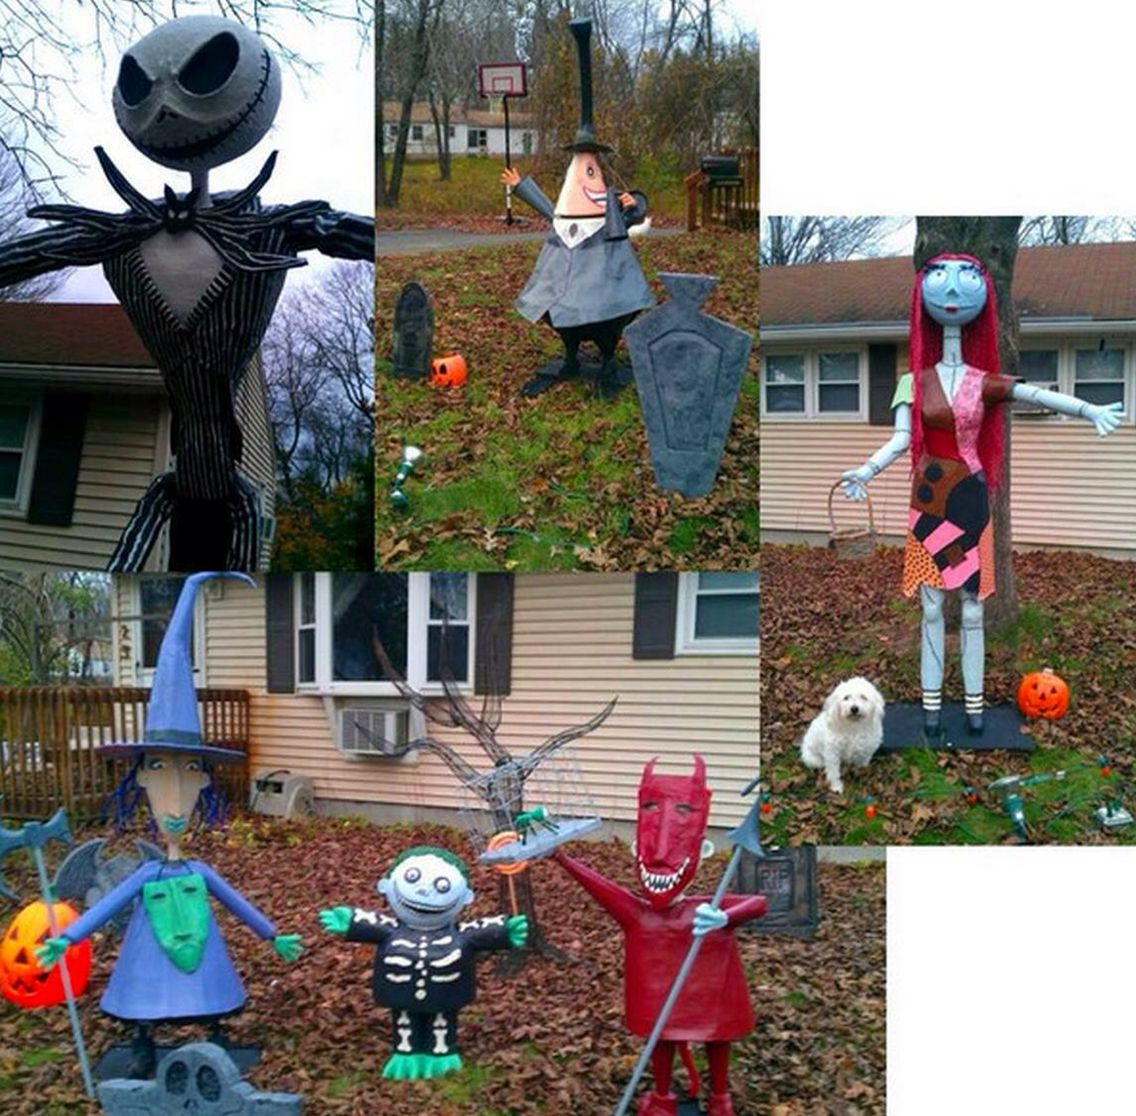 Pin by Bodey on Bodeys birthday Pinterest Halloween ideas - Halloween Yard Decorations Ideas